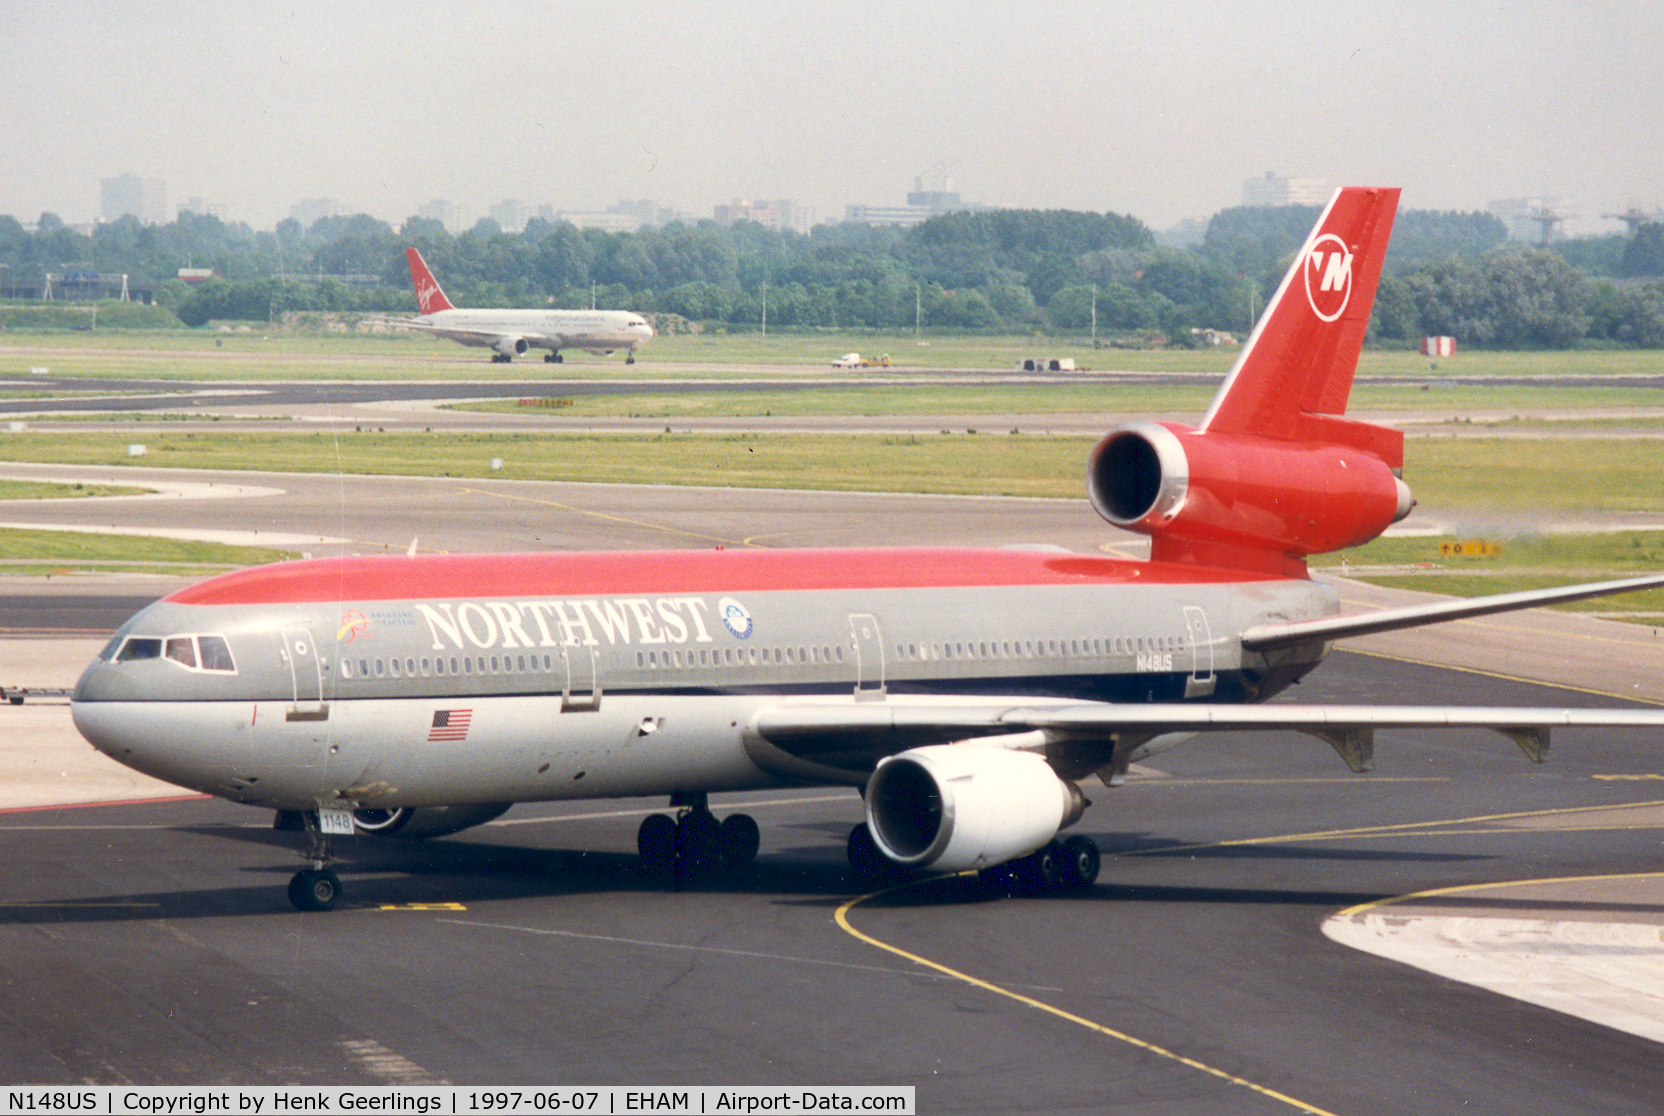 N148US, 1973 Douglas DC-10-40 C/N 46757, Northwest. In the background B767 from Martinair lsd to Virgin